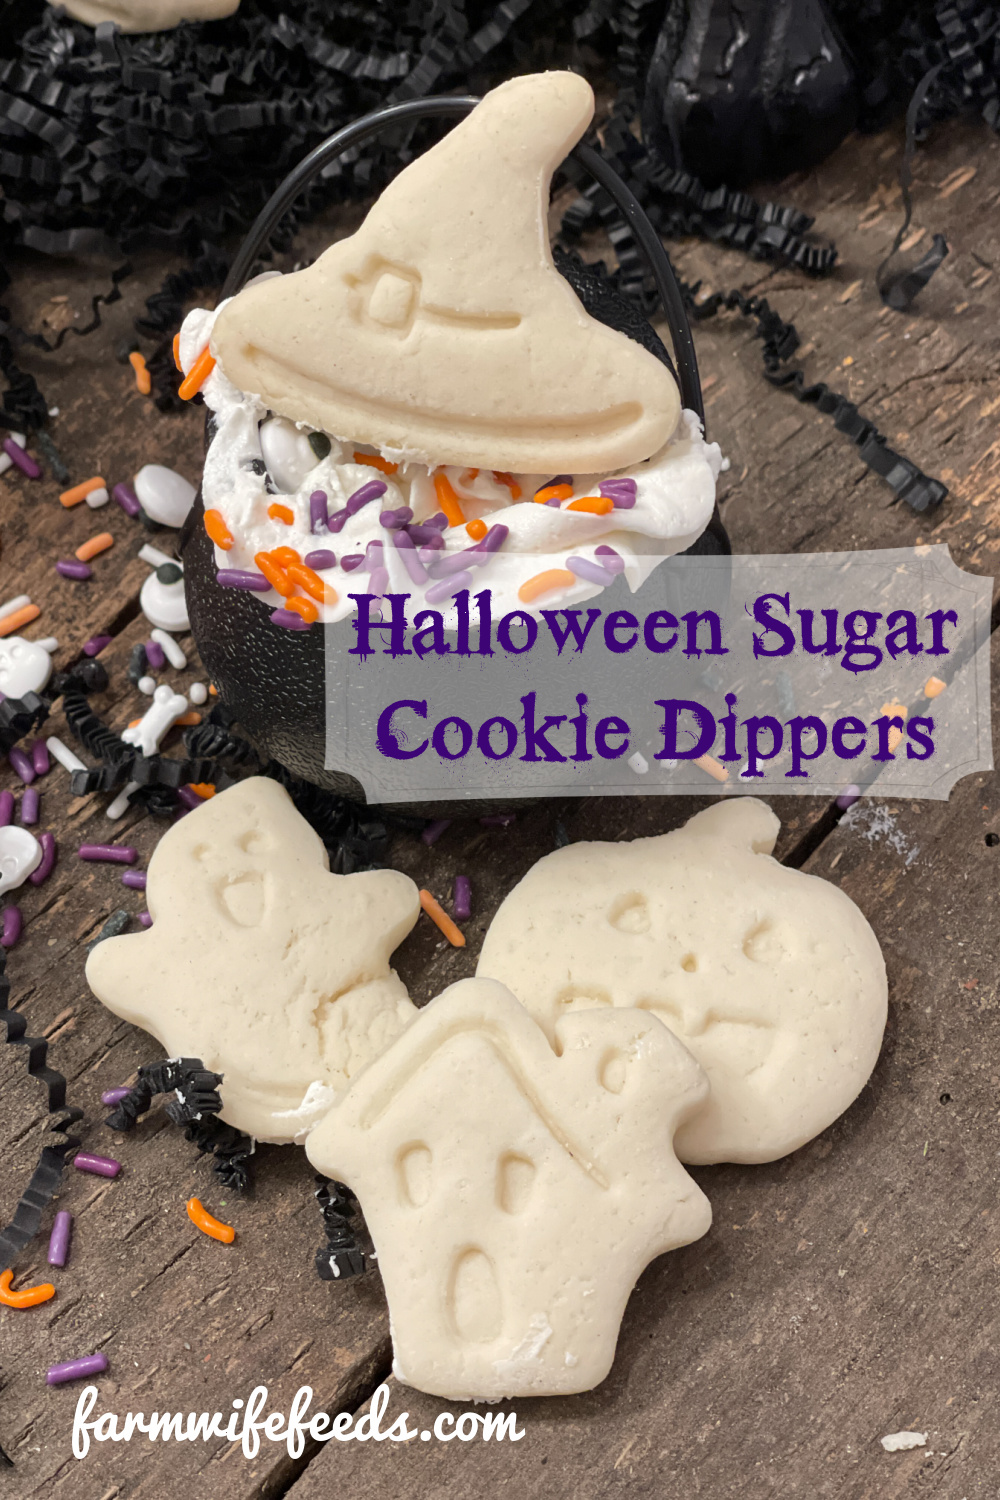 Halloween Sugar Cookie Dippers from Farmwife Feeds. A super easy fun treat for parties, classrooms or a treat for the family. Easy to use plunge cookie cutters and basic buttercream. #halloween #treats #cookiedippers